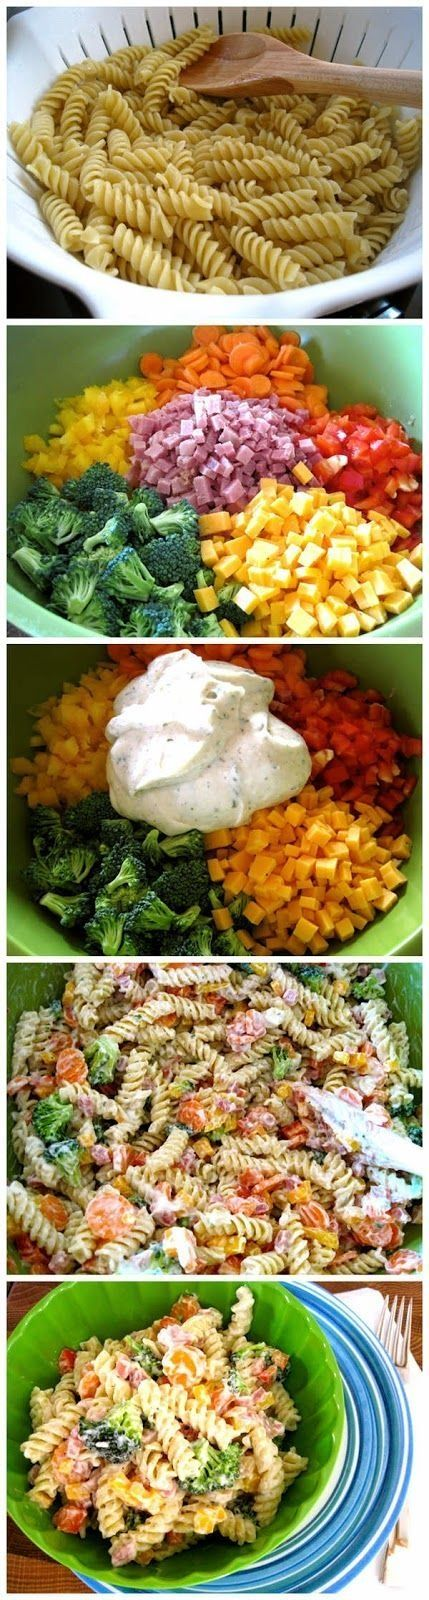 Ranch Pasta Salad by samanthasam